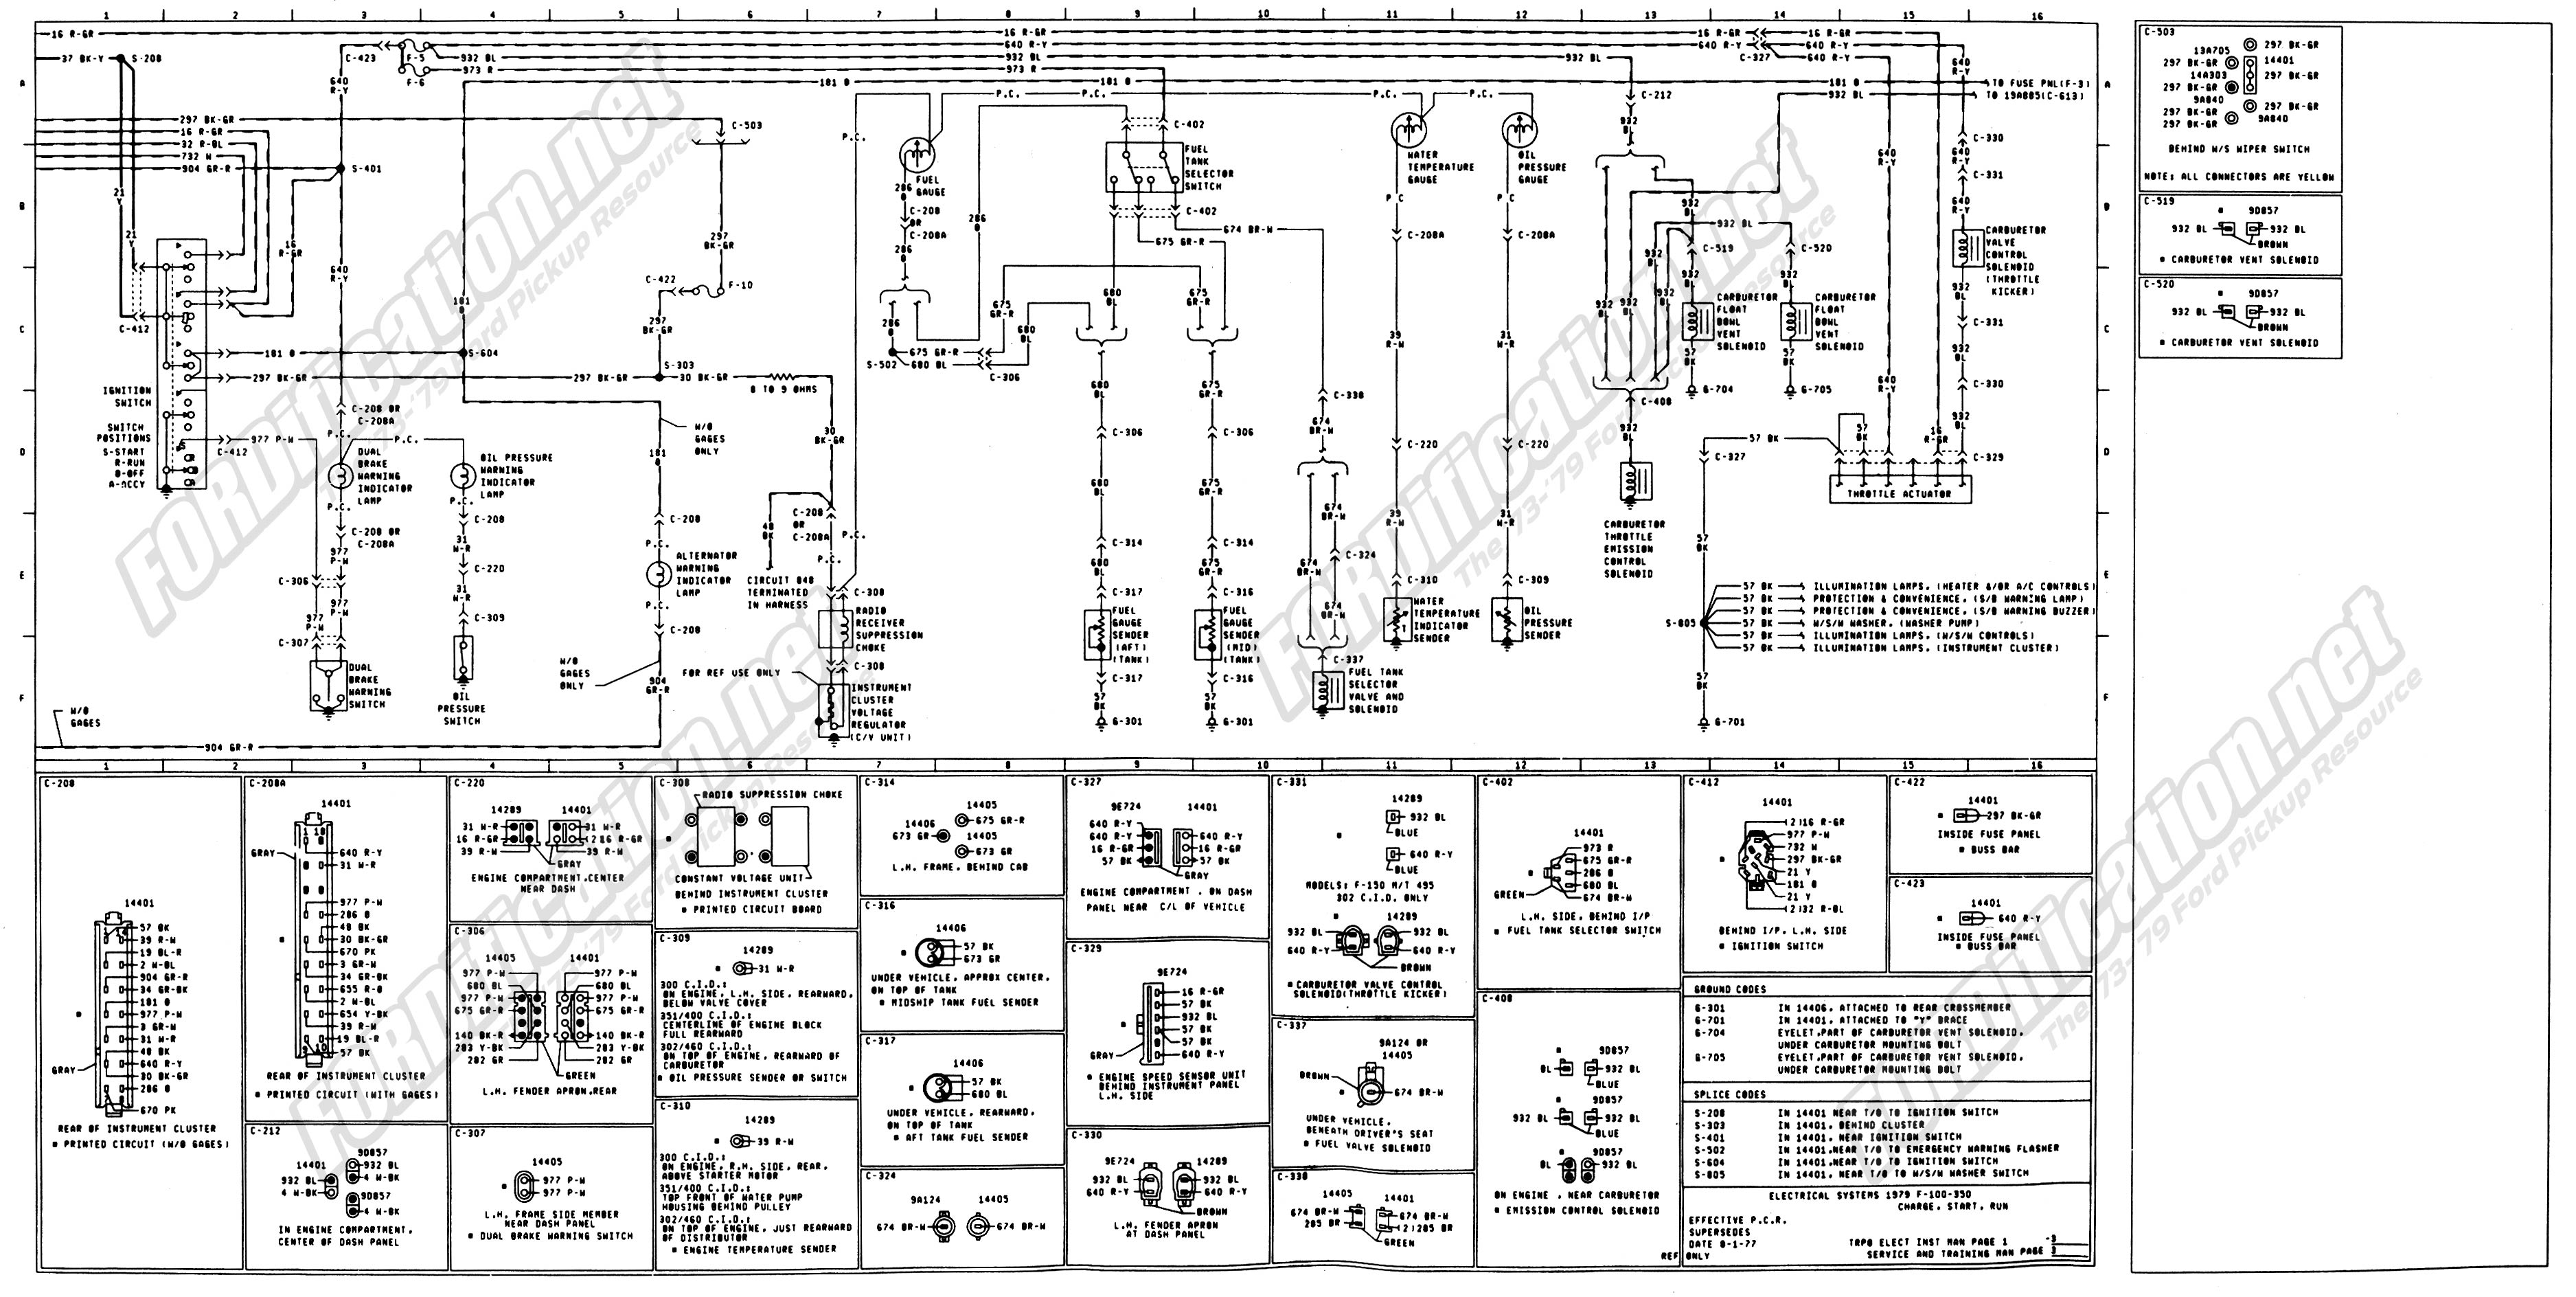 wiring_79master_3of9 1973 1979 ford truck wiring diagrams & schematics fordification net 2000 Mercury Mountaineer Radio Wiring Diagram at bayanpartner.co